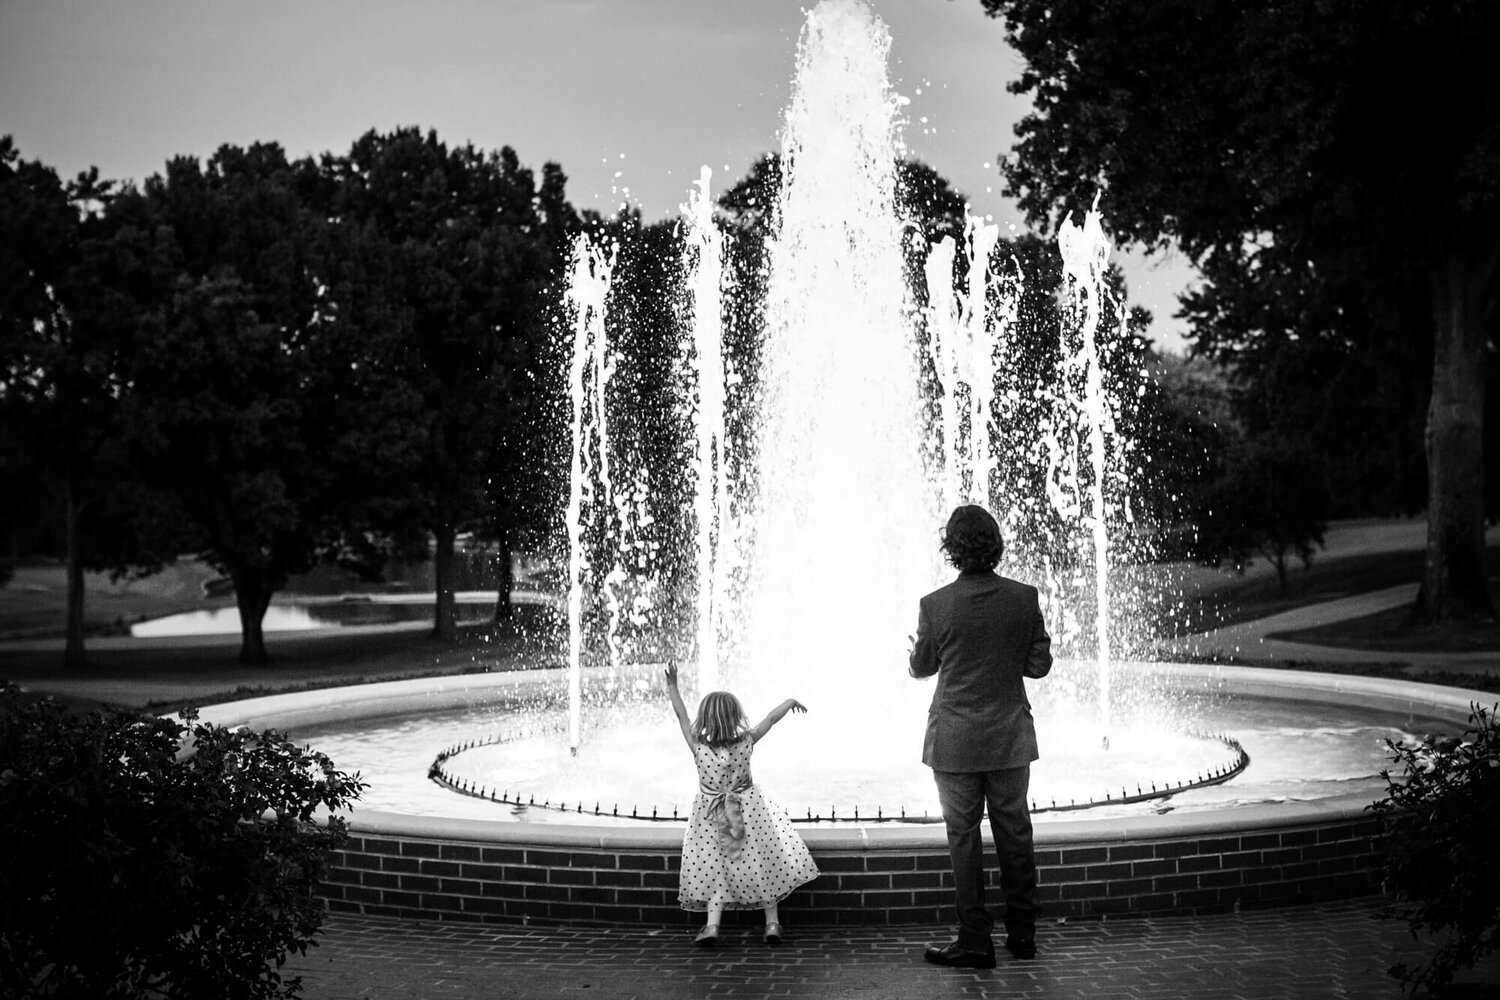 20-old-warson-country-club-fountain-wedding-guests.jpg